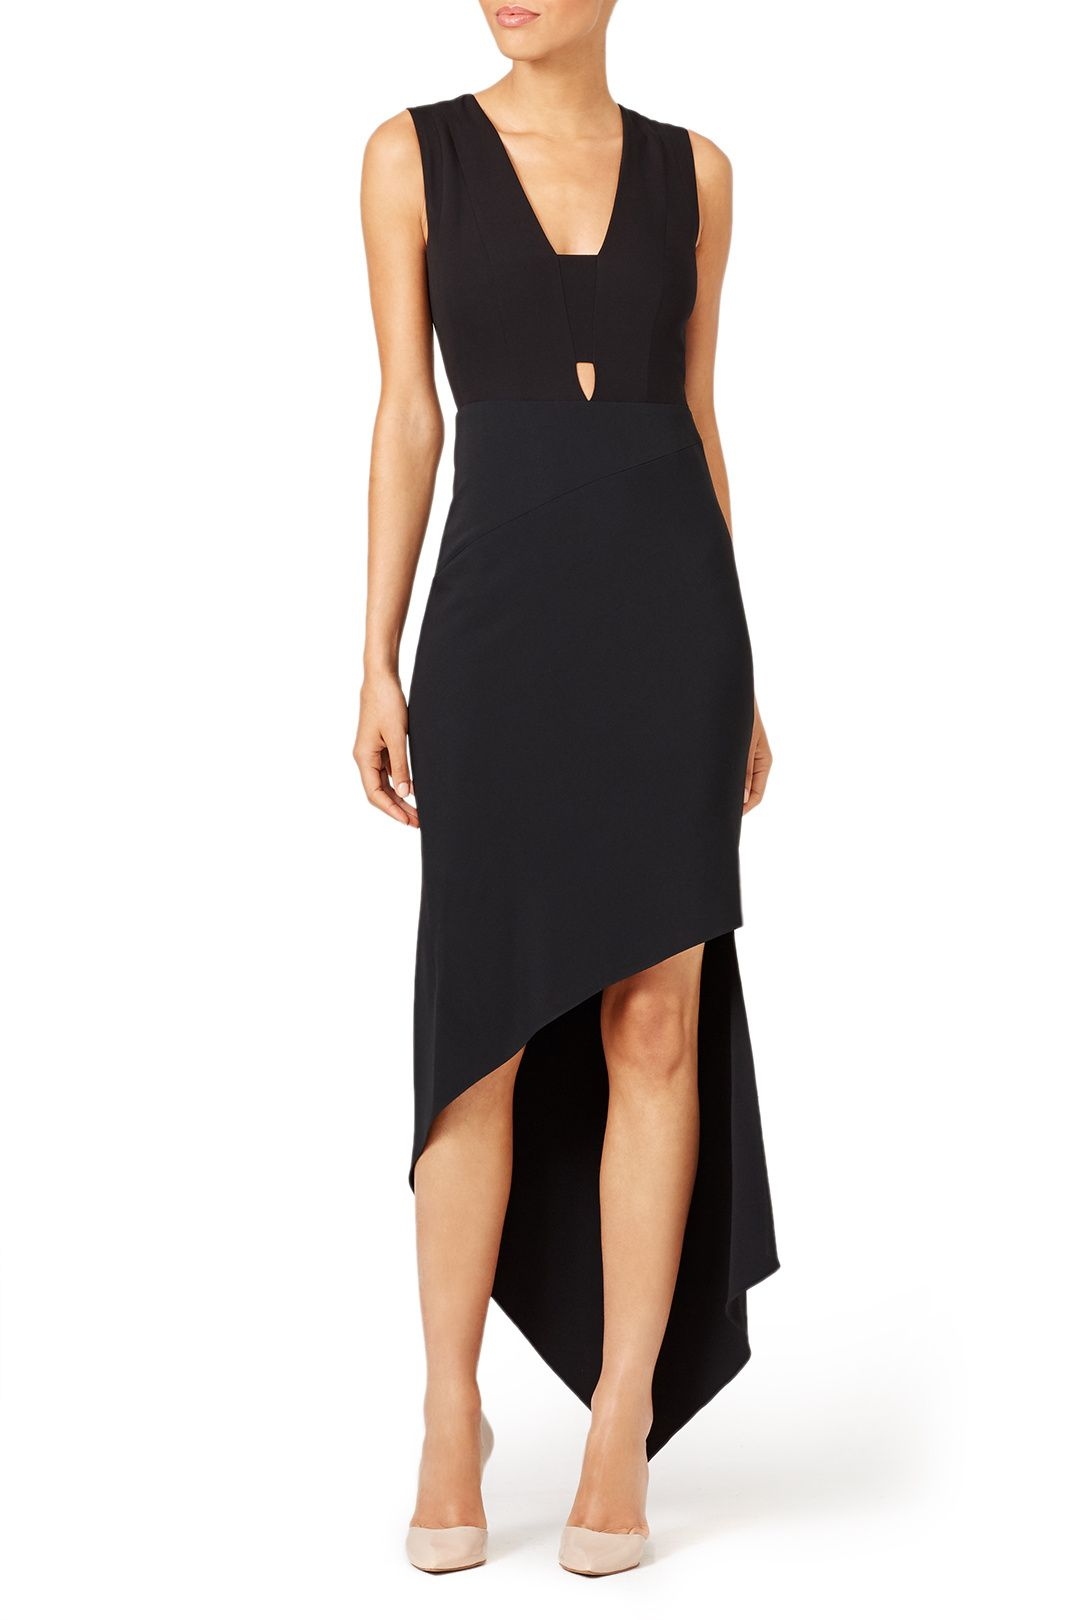 Black tie gown by narciso rodriguez for 275 rent the